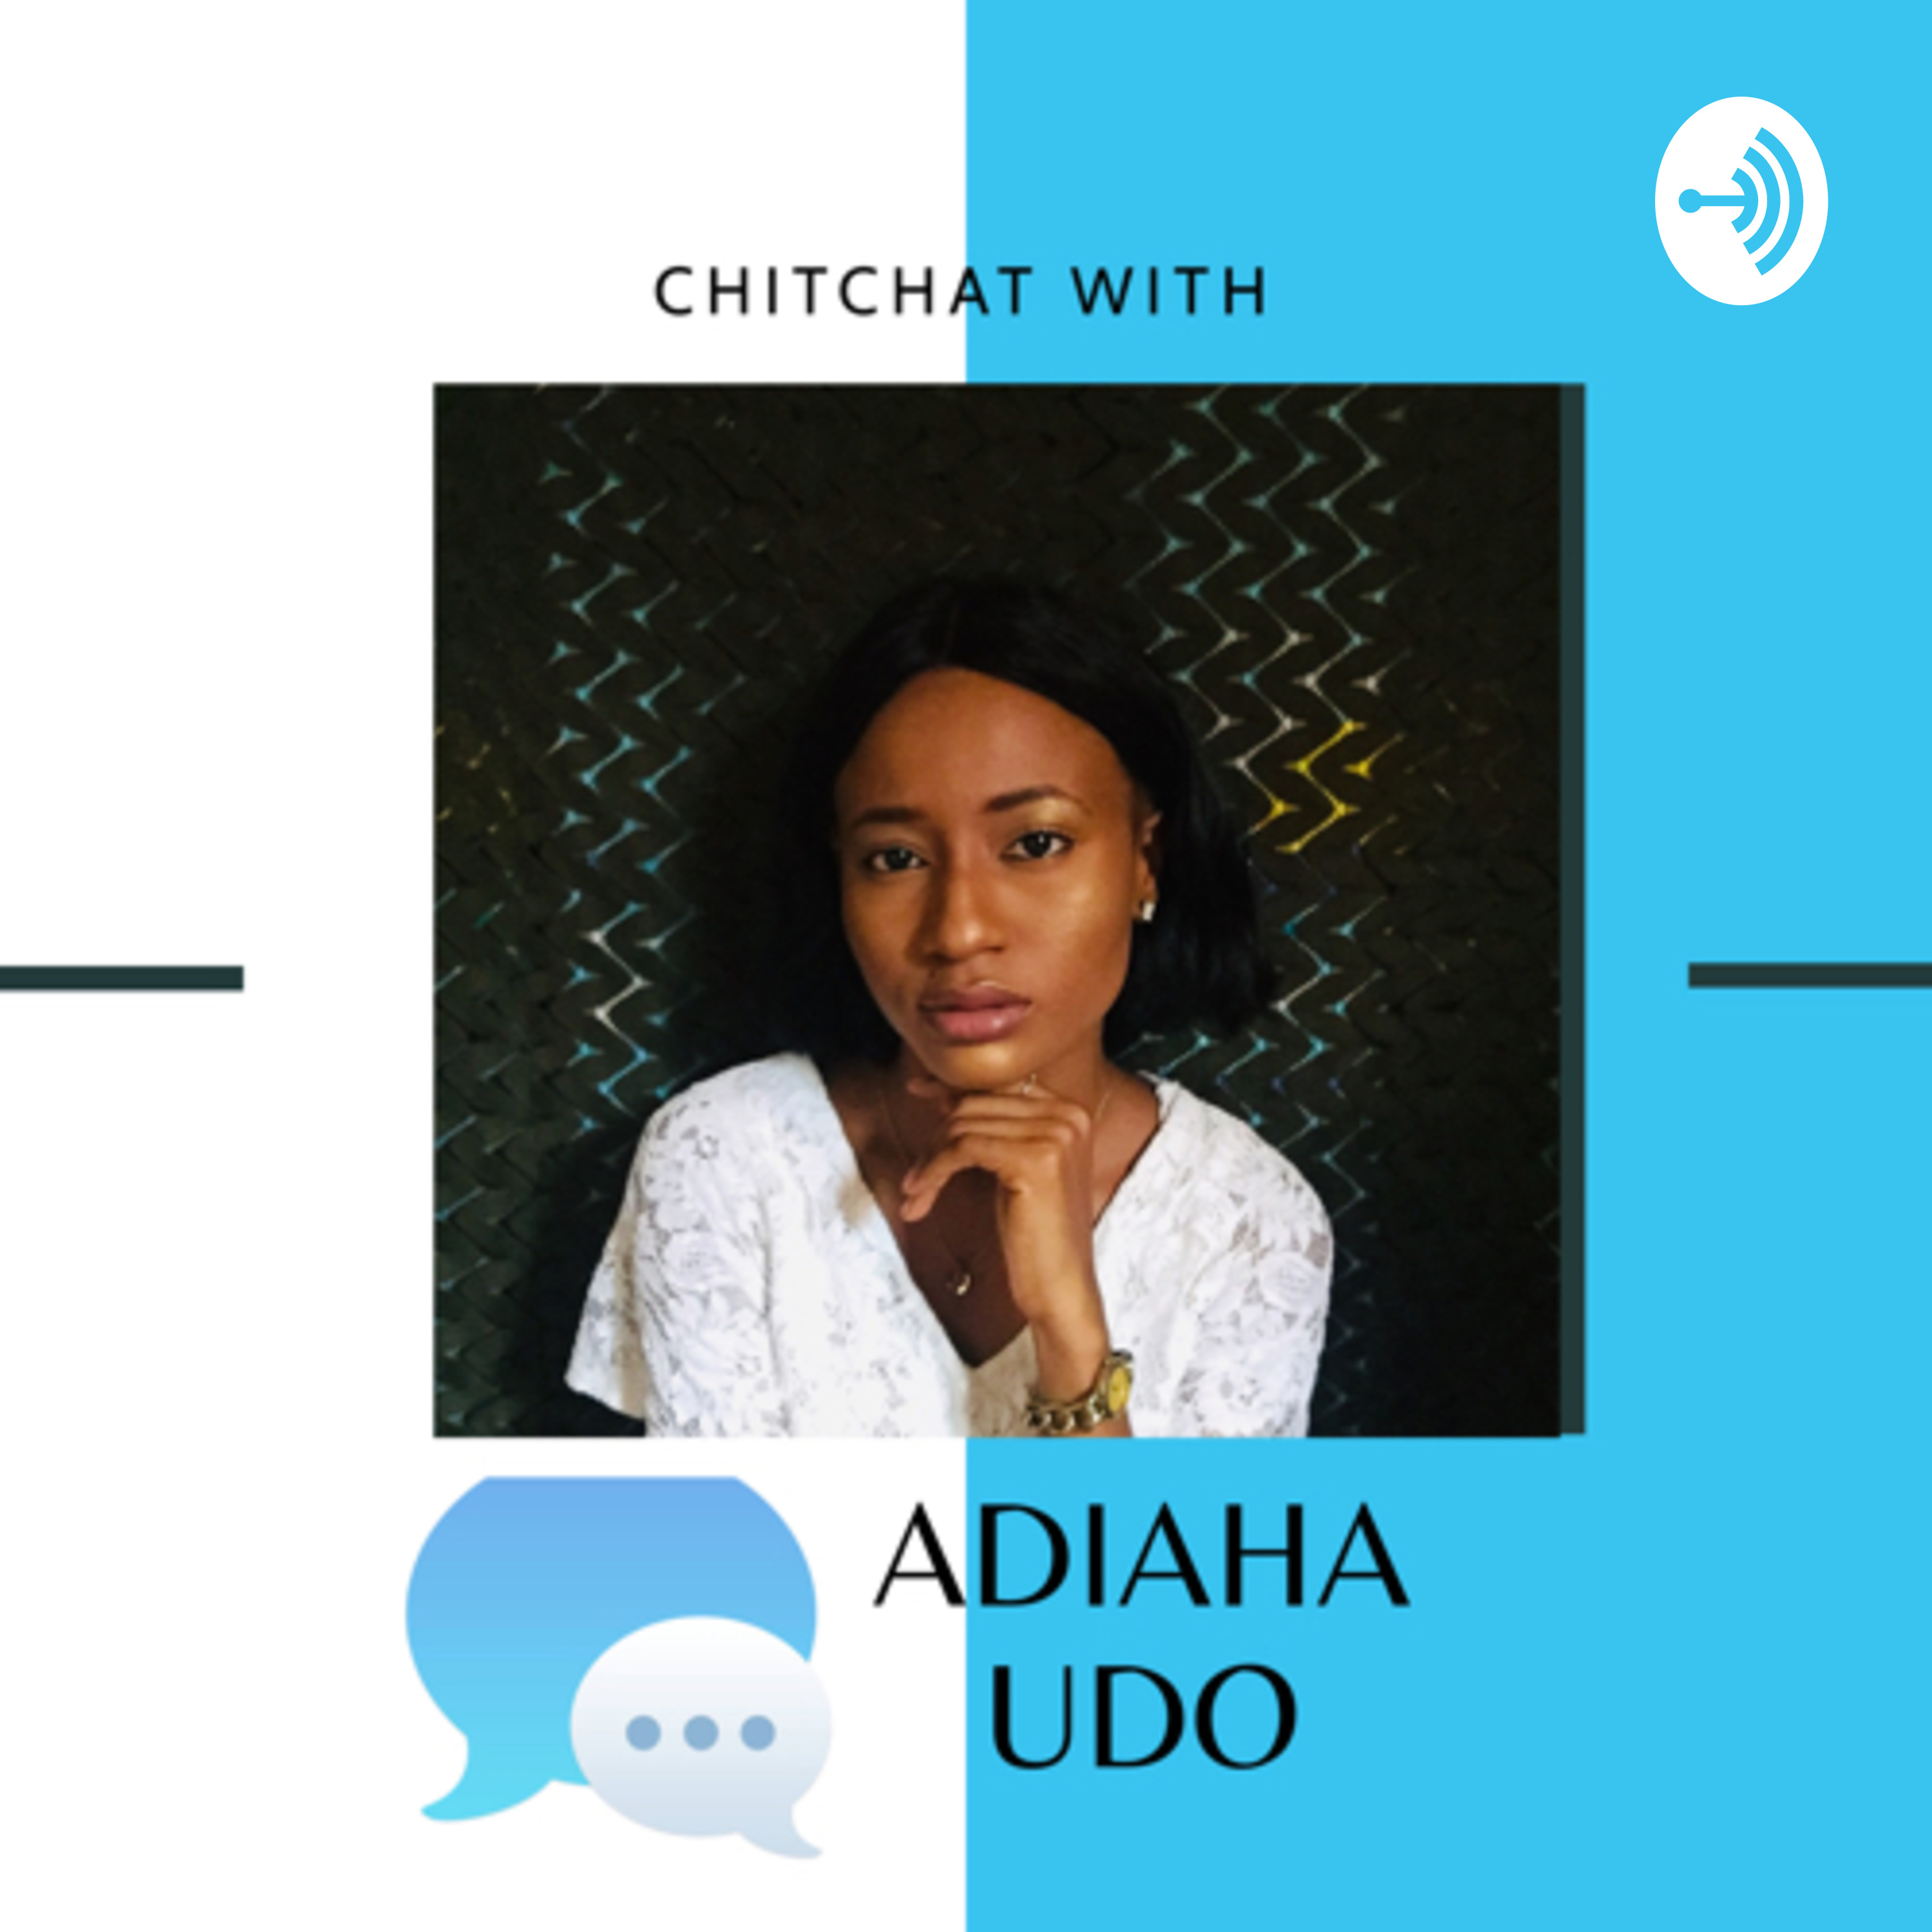 Chitchat with Adiaha Udo podcast